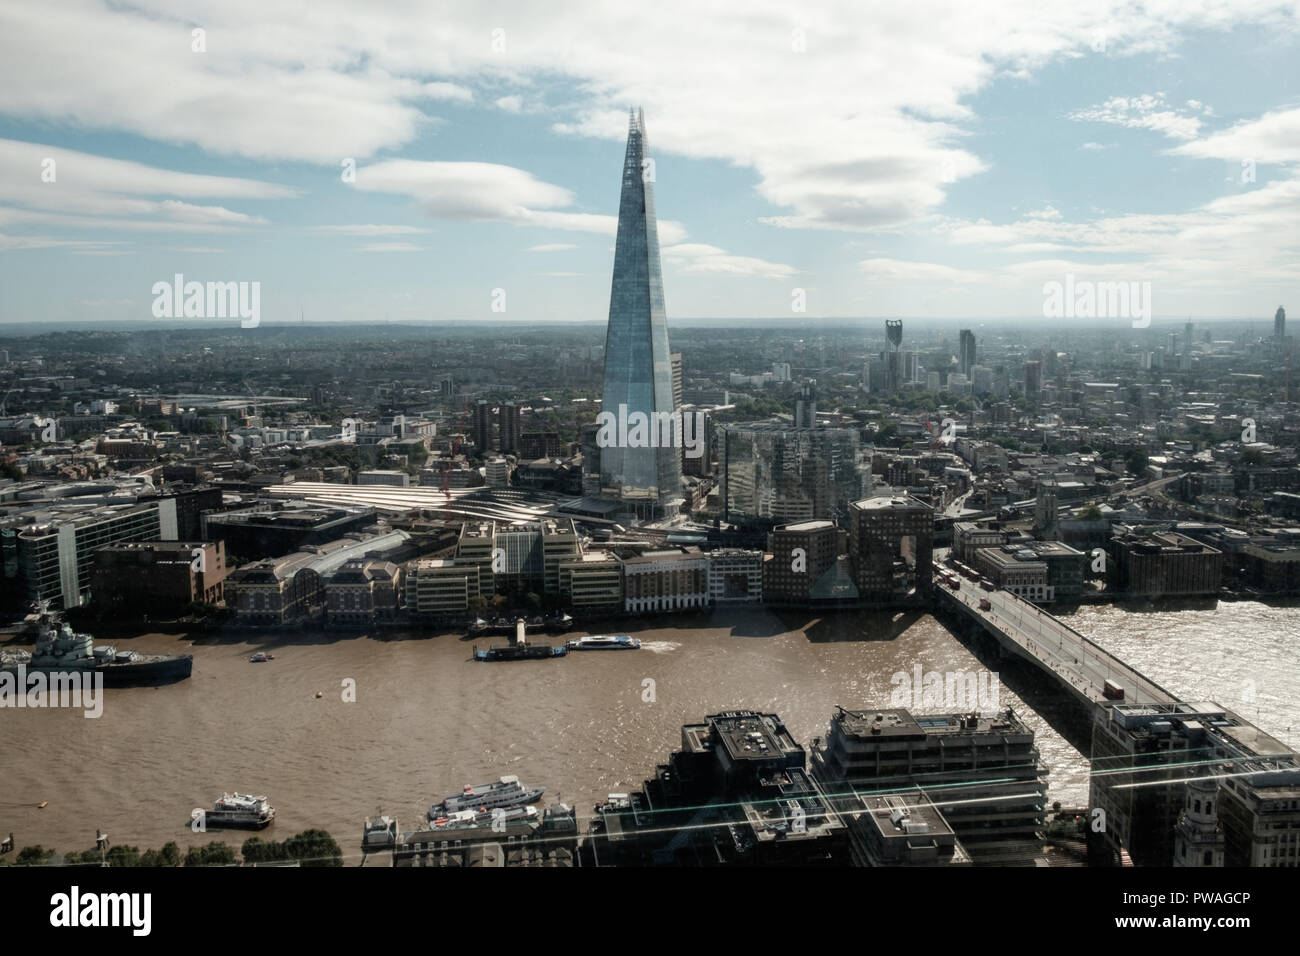 Aerial view of London skyline, including The Shard and the River Thames. Horizontal, copy space. - Stock Image